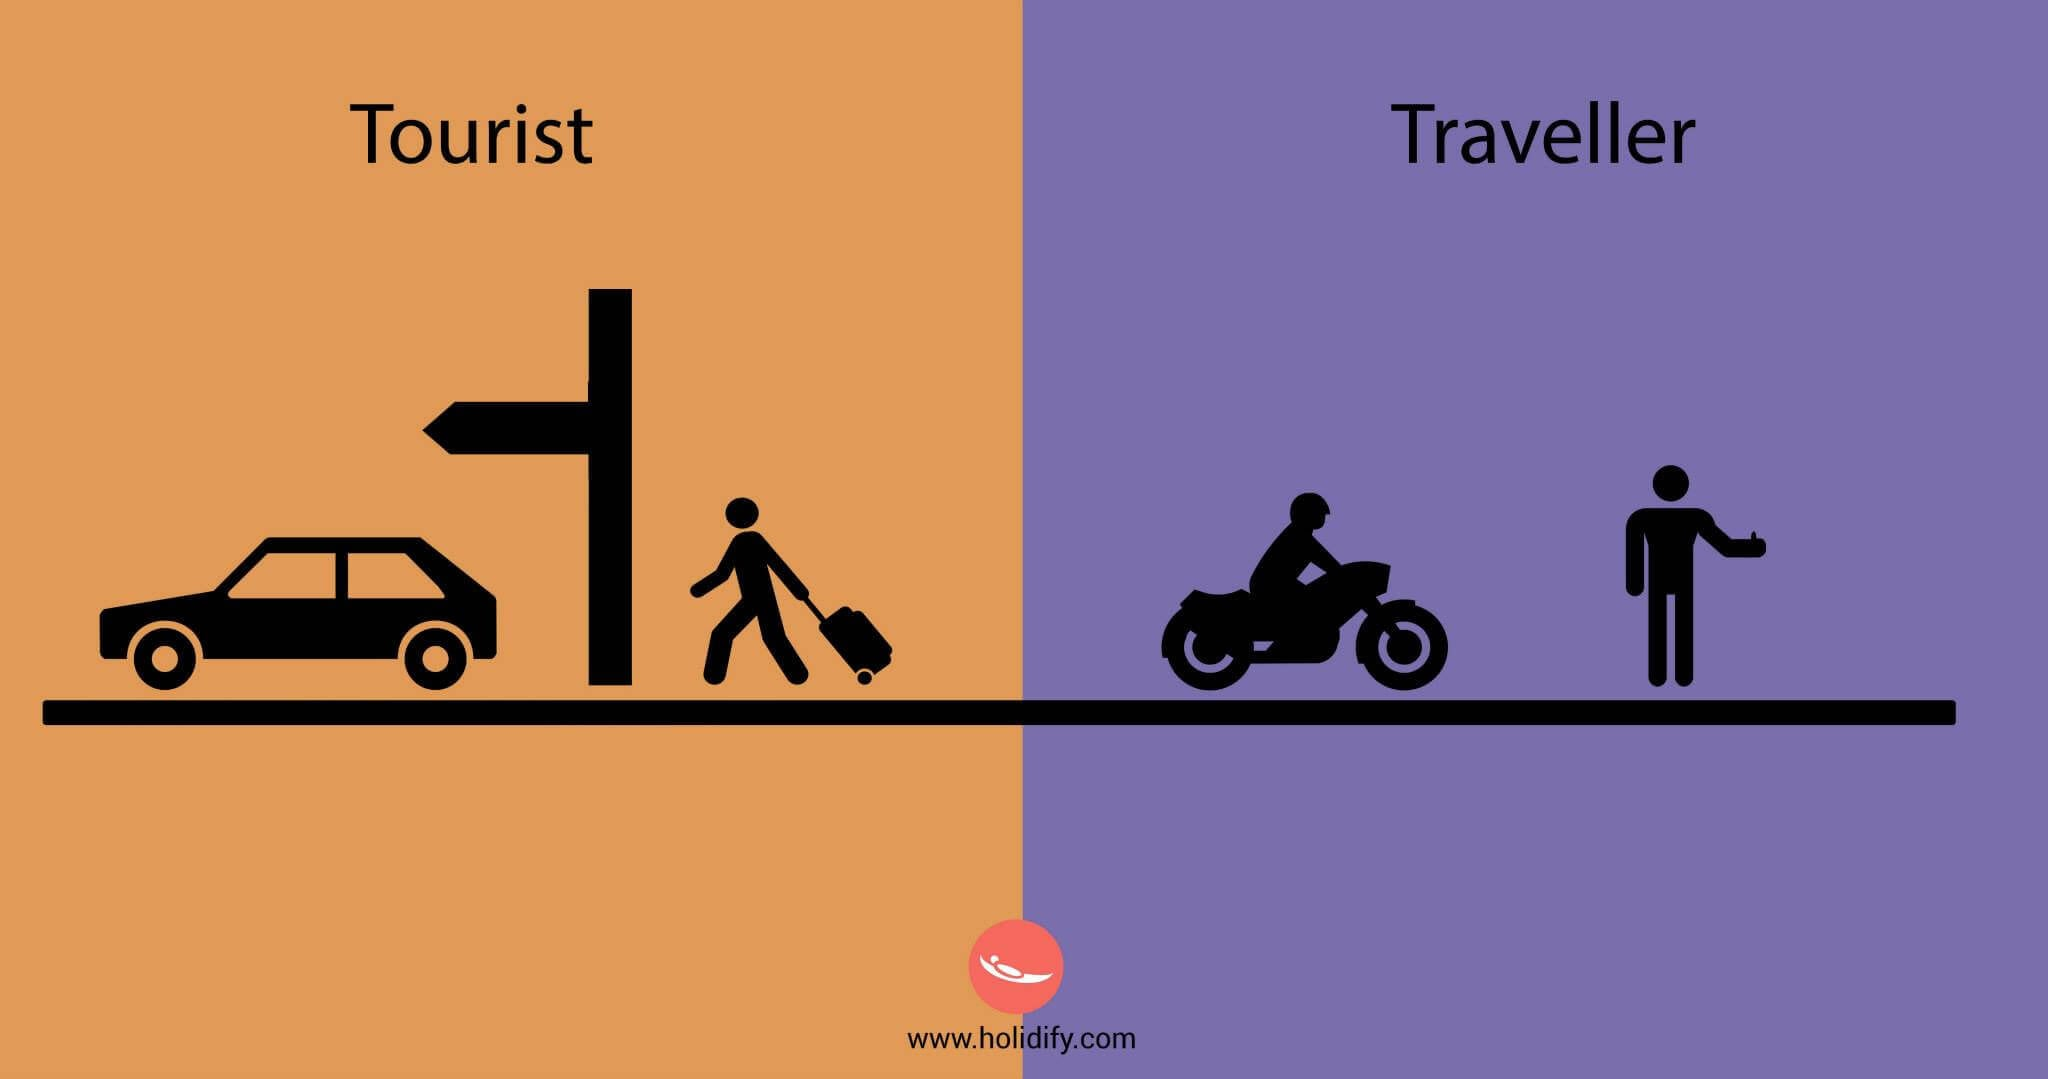 tourist-vs-traveller-freeyork-5